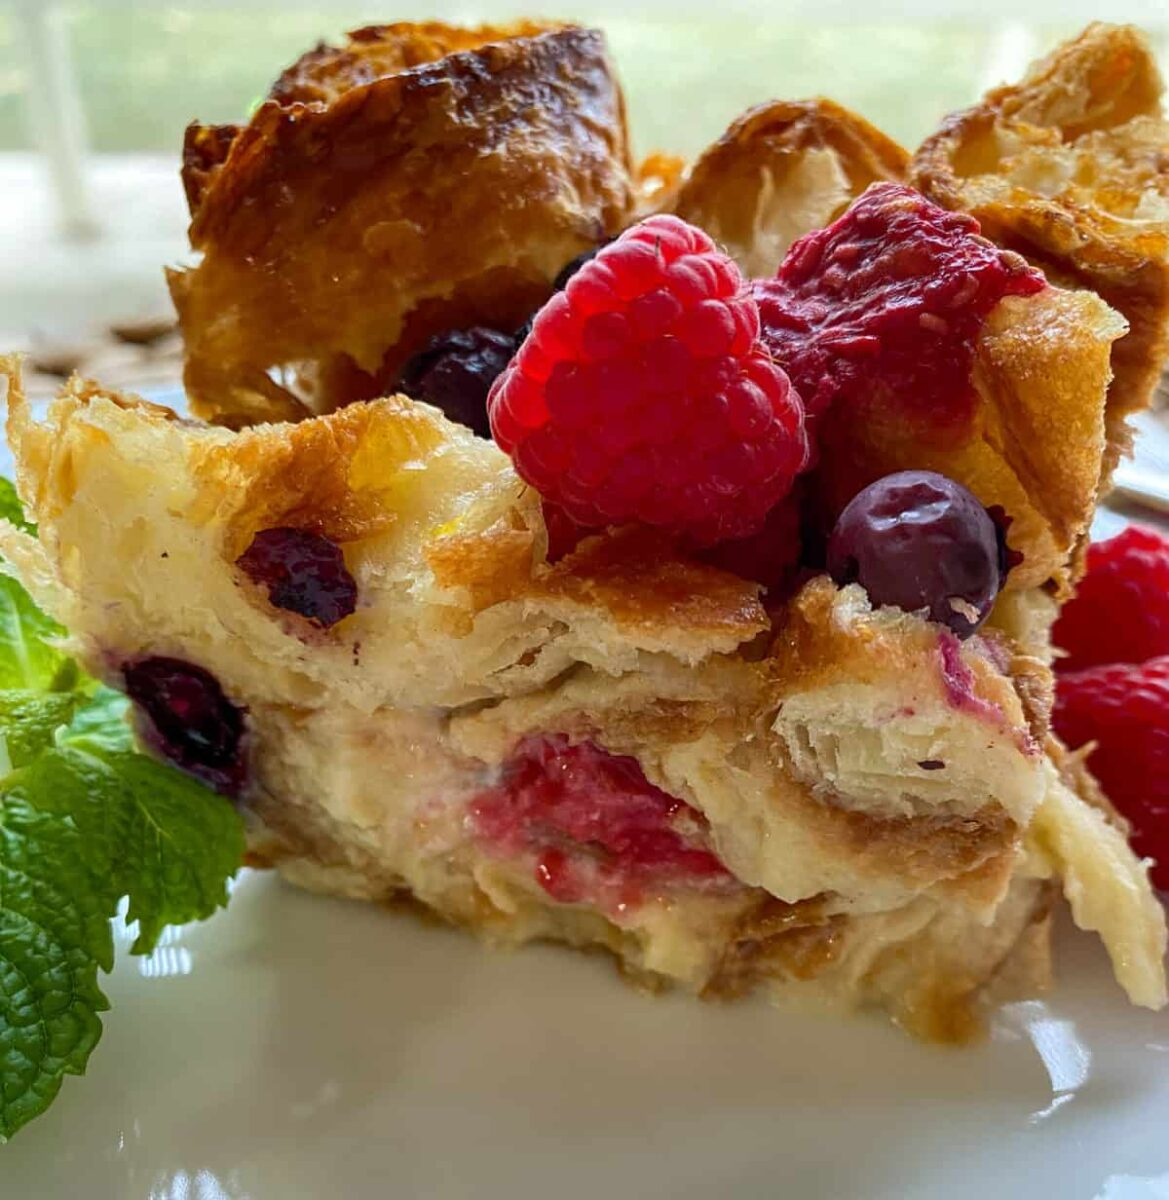 A portion of bread pudding on a plate with fresh raspberry on top.